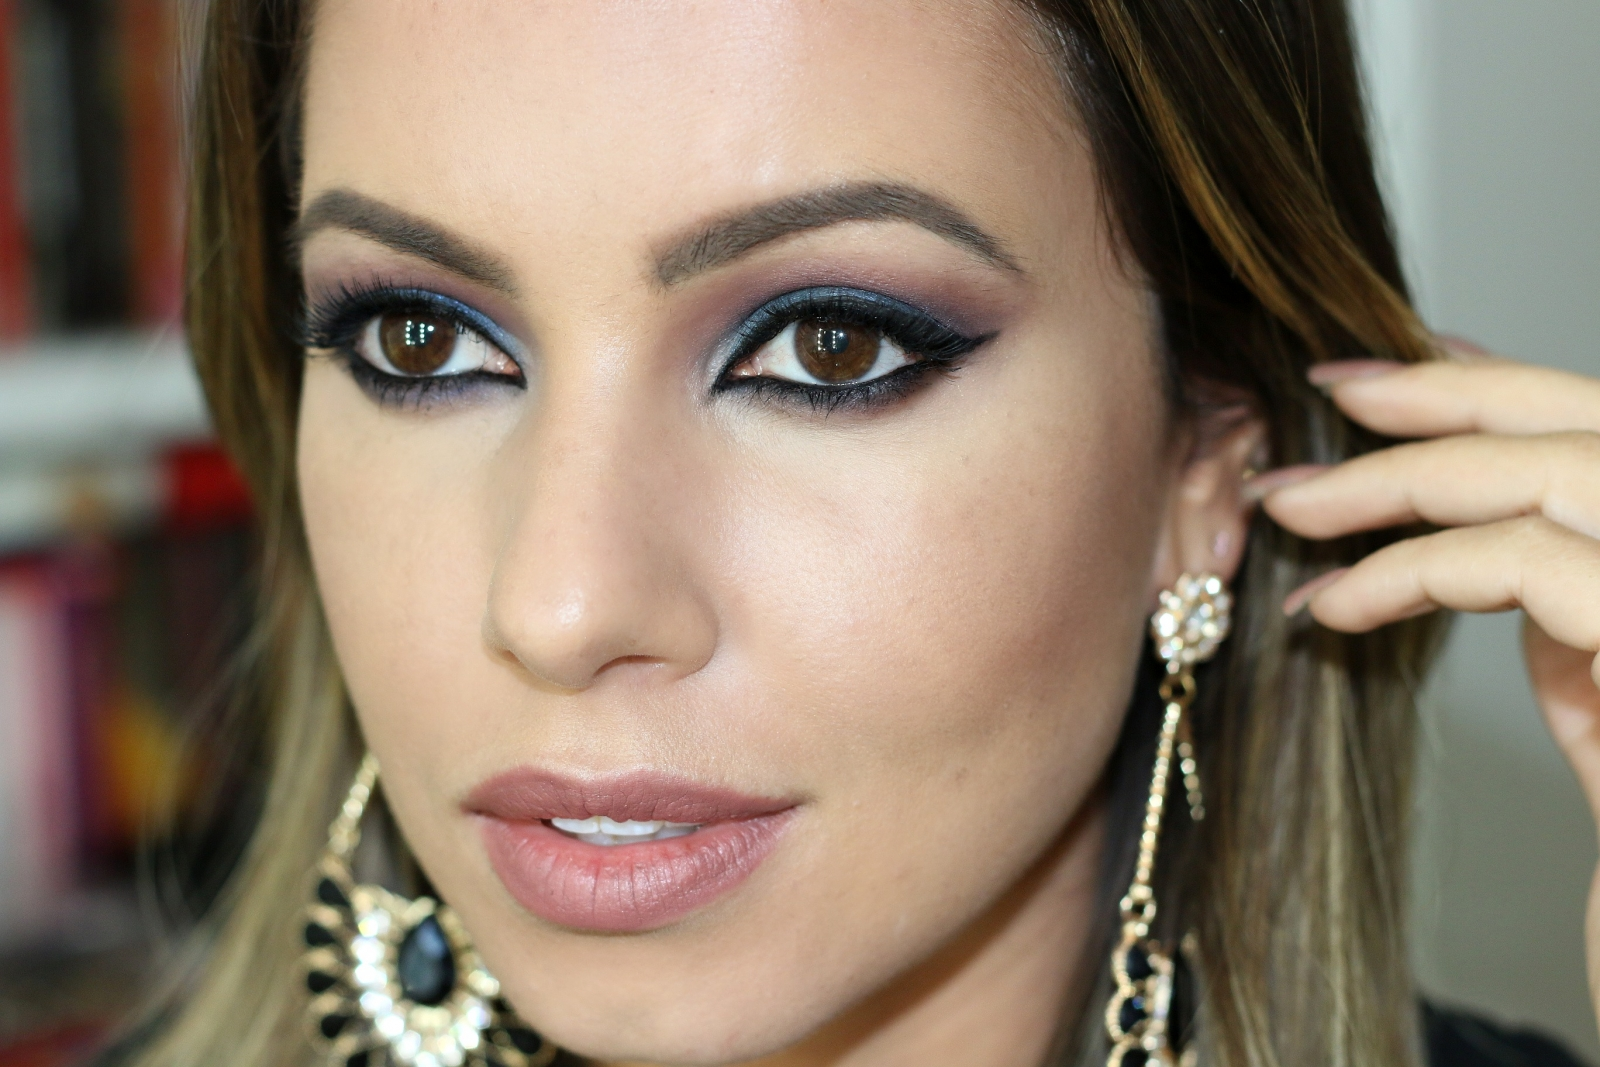 maquiagem-arabe-arabic-makeup-juliana-goes.jpg.jpg